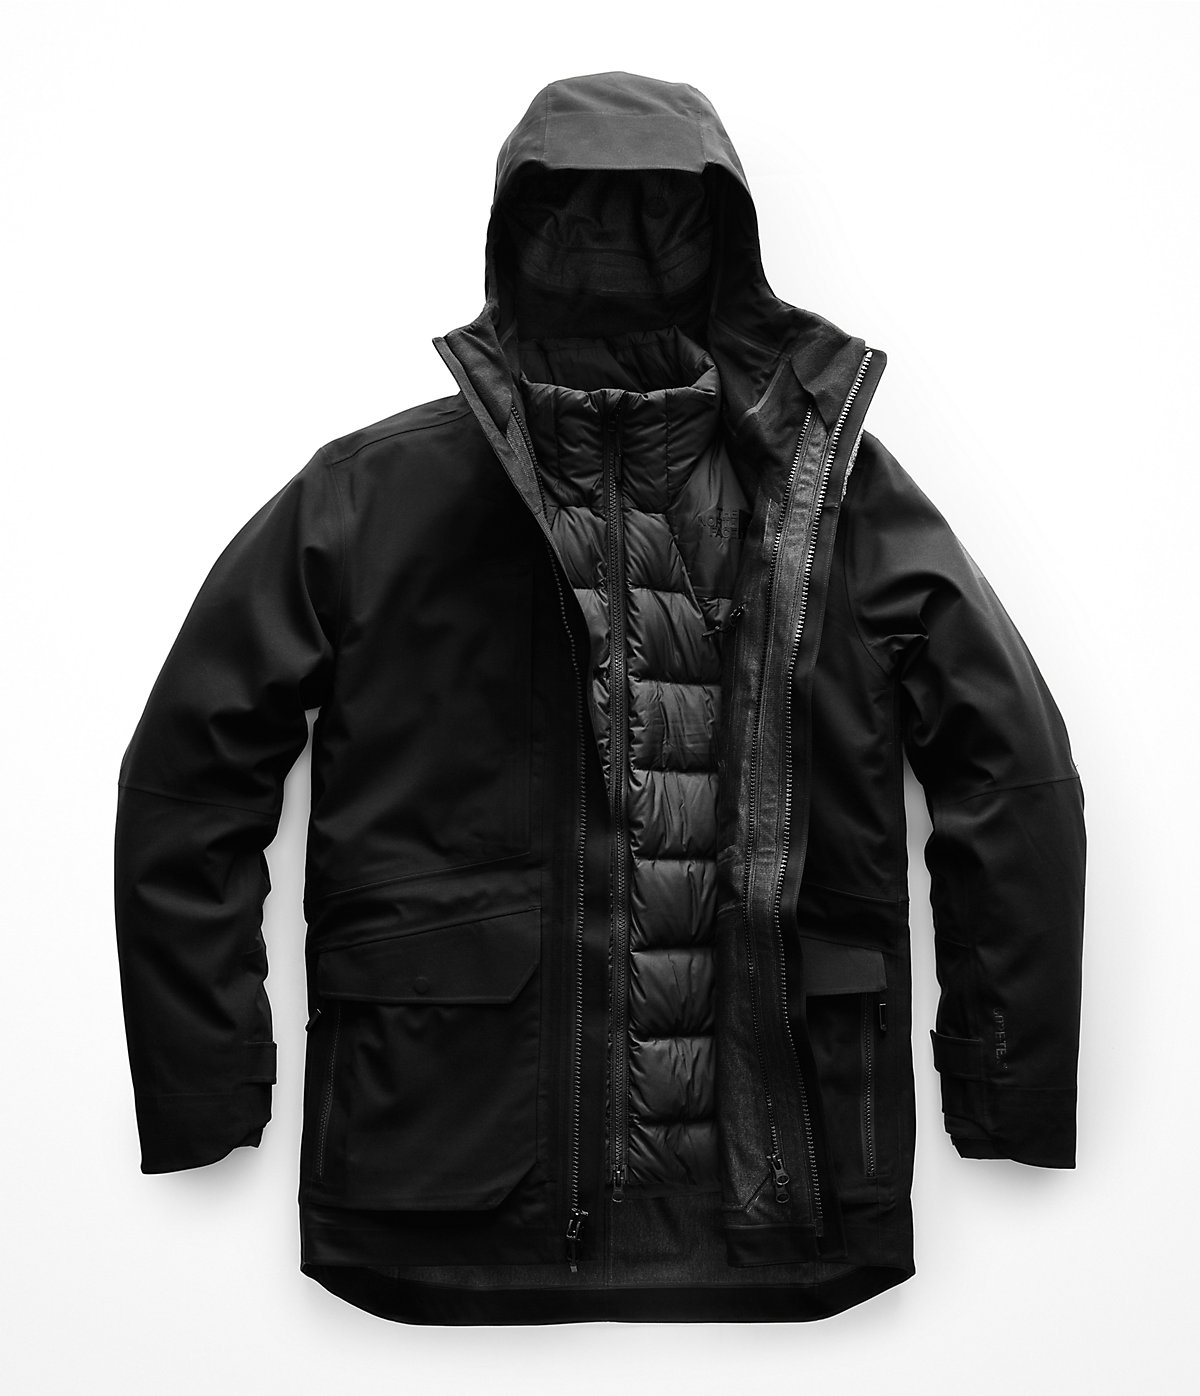 Men S Cryos Gtx Triclimate The North Face Triclimate Jacket Mens Jackets Jackets [ 1396 x 1200 Pixel ]